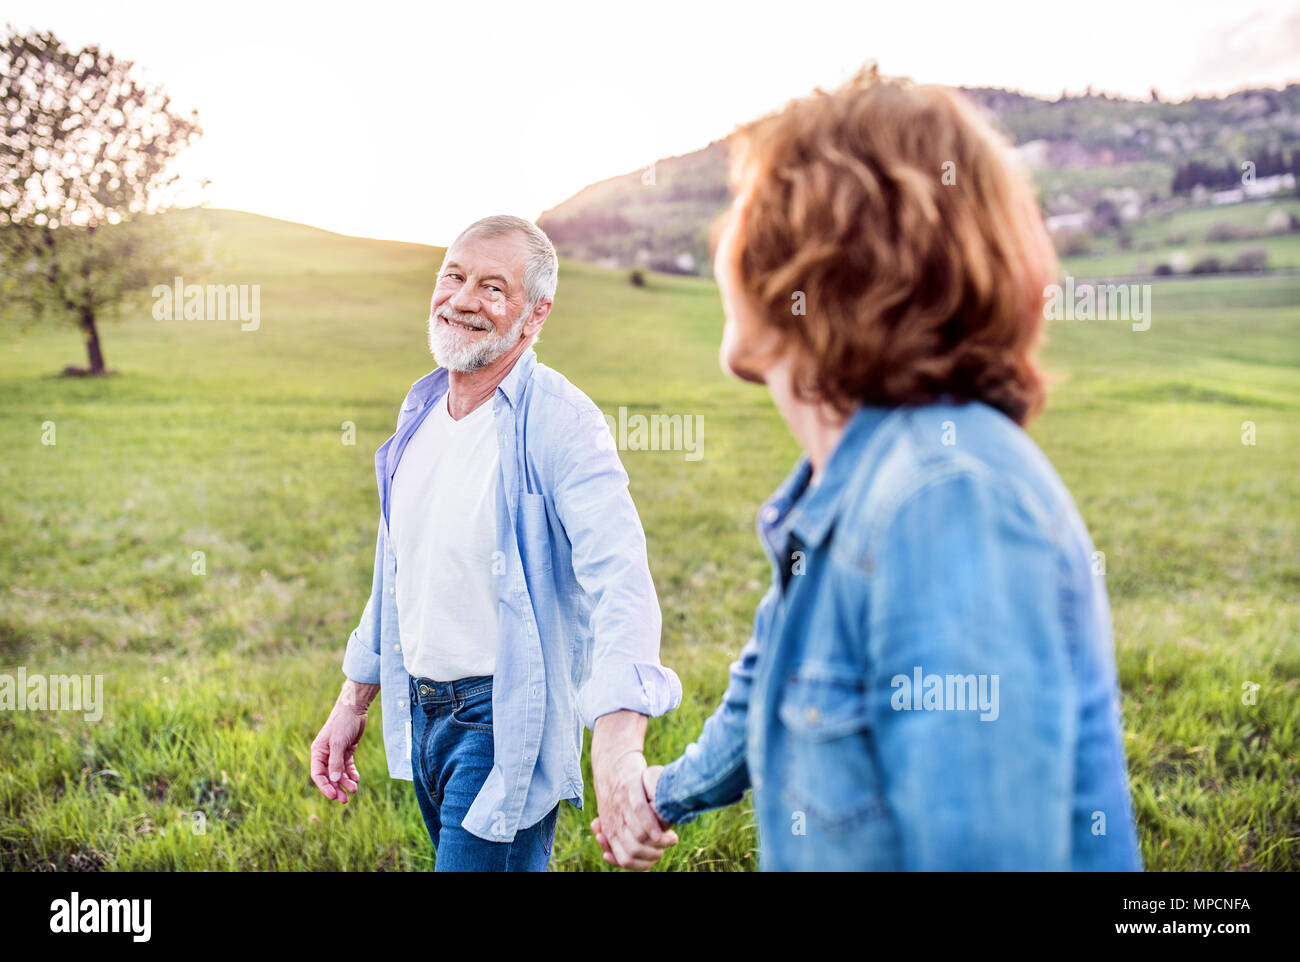 Senior couple walking outside in spring nature, holding hands. - Stock Image